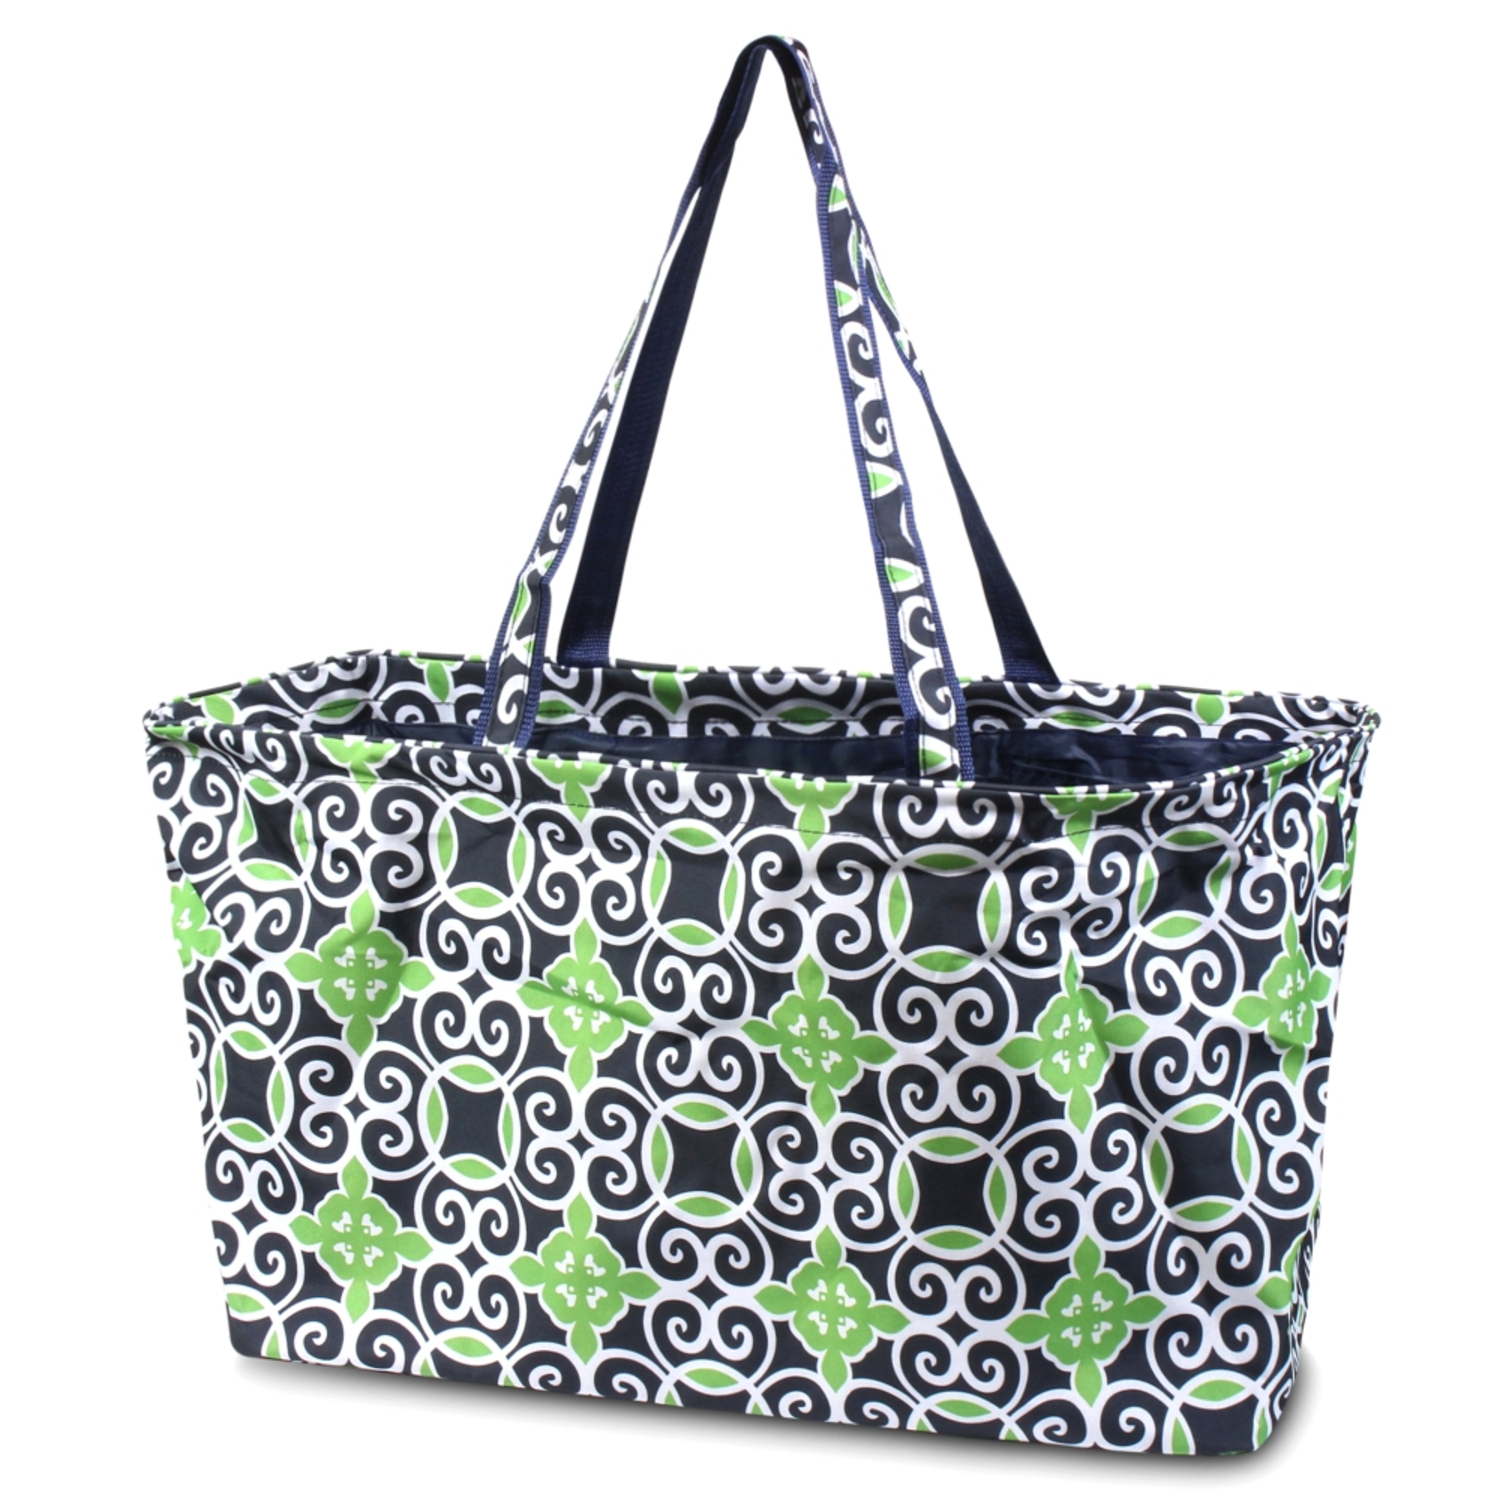 Zodaca All Purpose Large Utility Handbag Laundry Shopping Travel Tote Carry Shoulder Bag